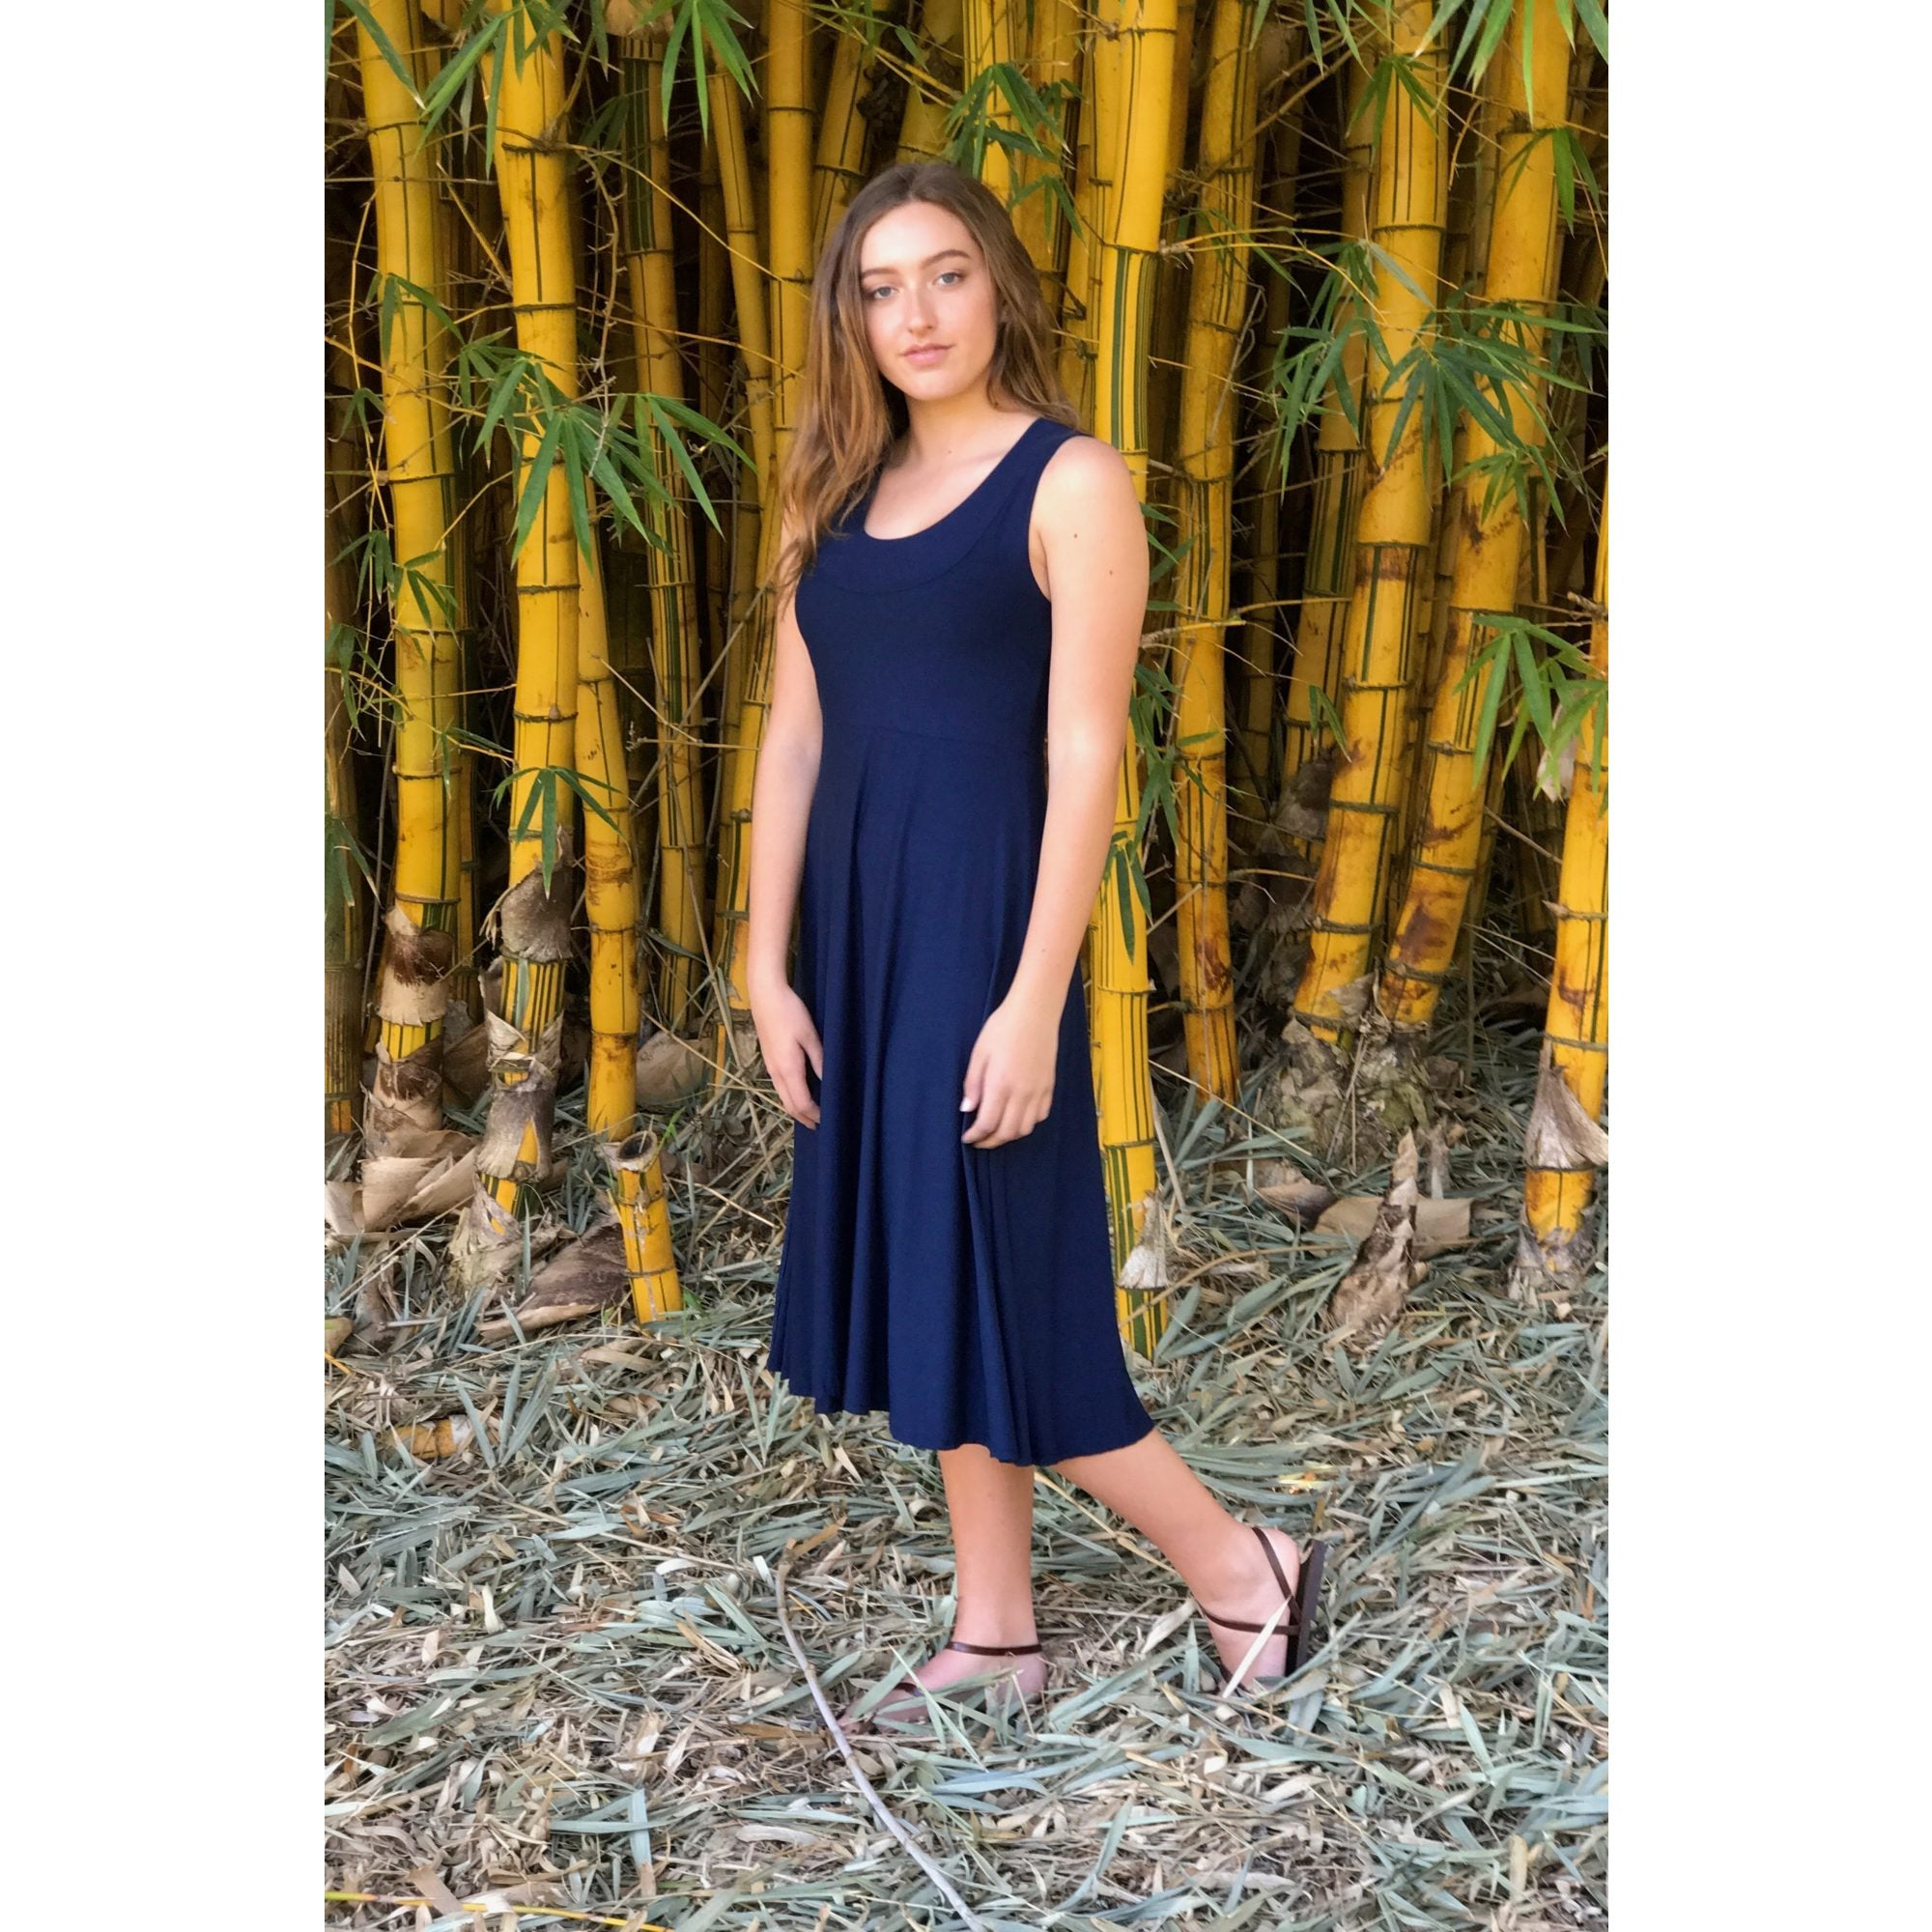 Soulsong Elegant Dress in Navy